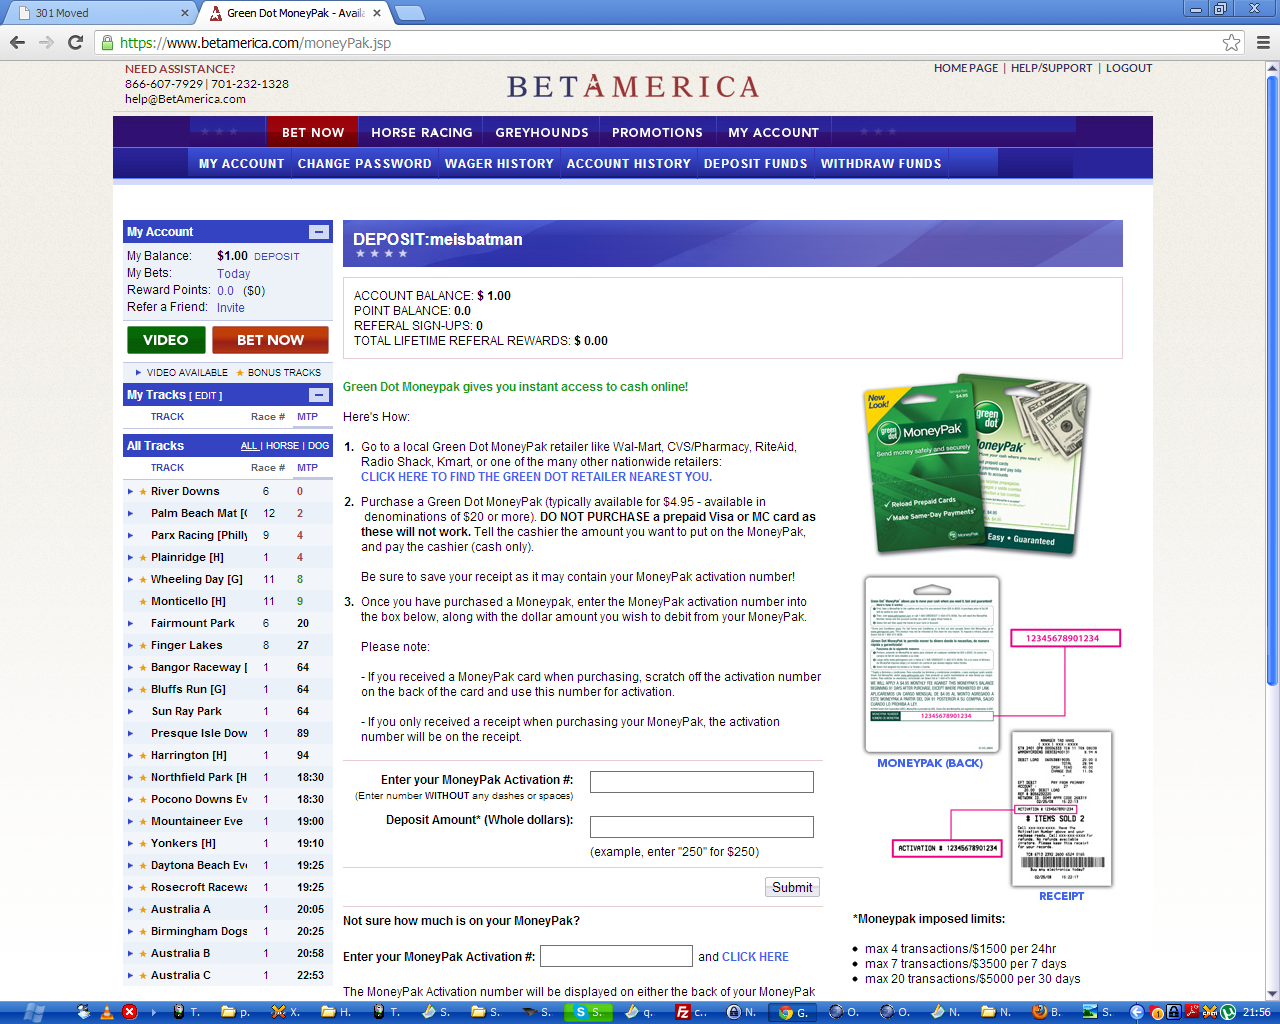 moneybak green dot moneypak customer care complaints and reviews  money laundering betamerica com is an online gambling site they probably use this service to launder